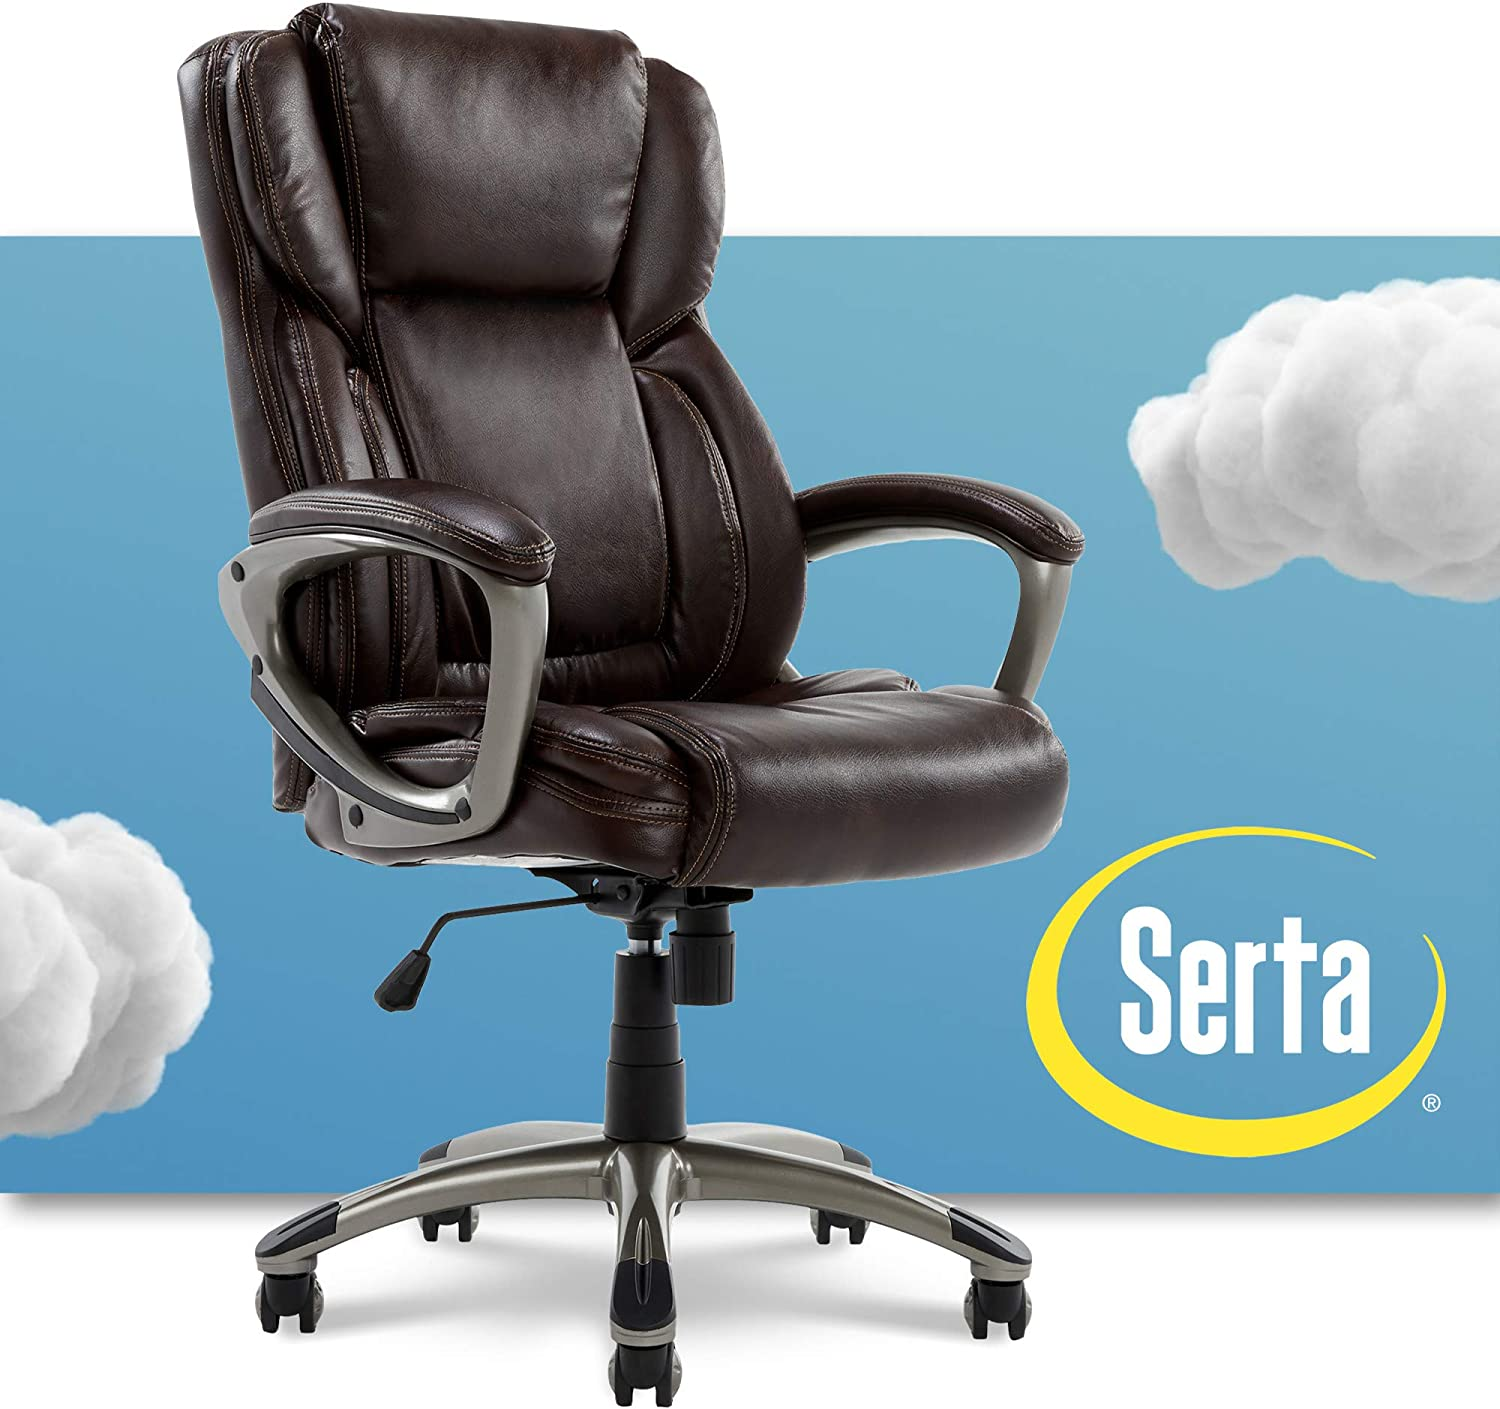 Serta Executive Office Adjustable Ergonomic Computer Chair with Layered  Body Pillows, Waterfall Seat Edge, Bonded Leather, Brown